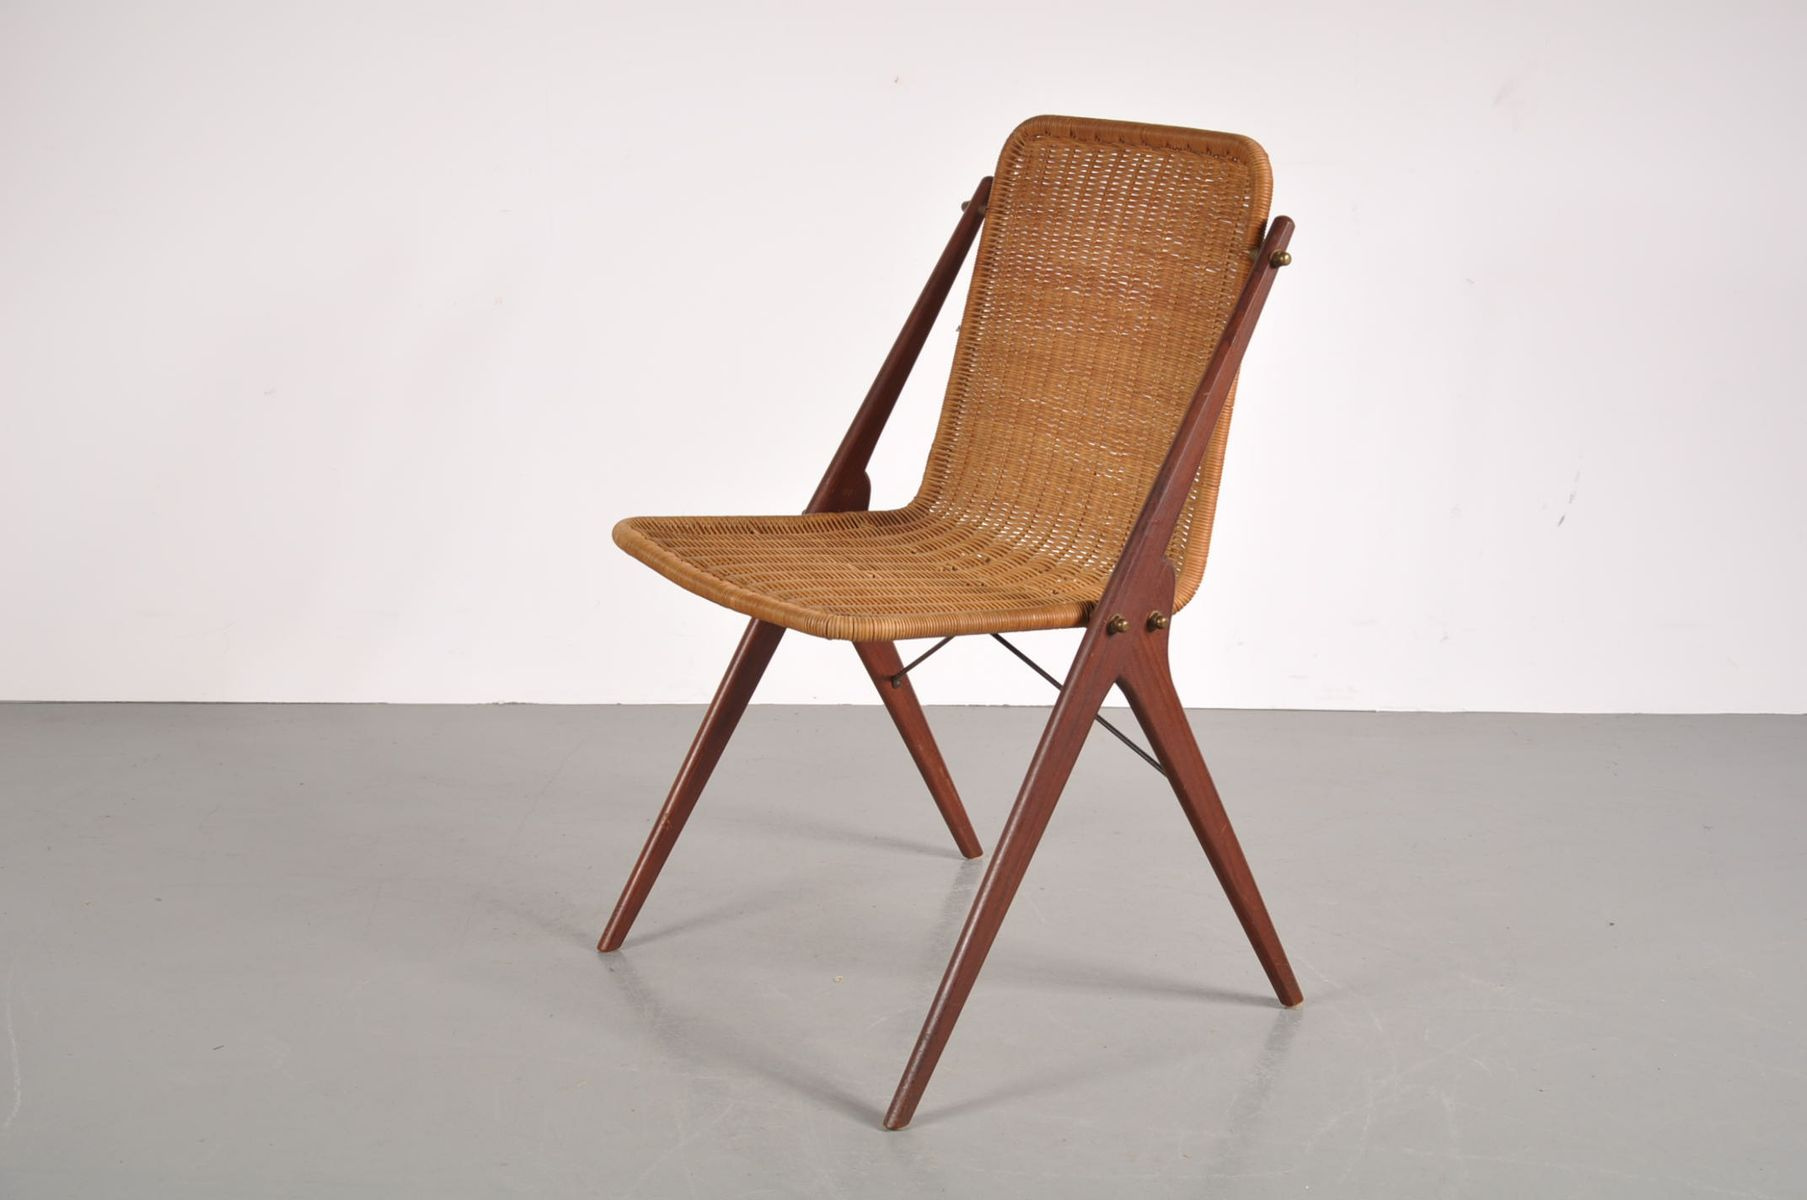 Vintage Teak And Wicker Dining Chairs Set Of 4 For Sale